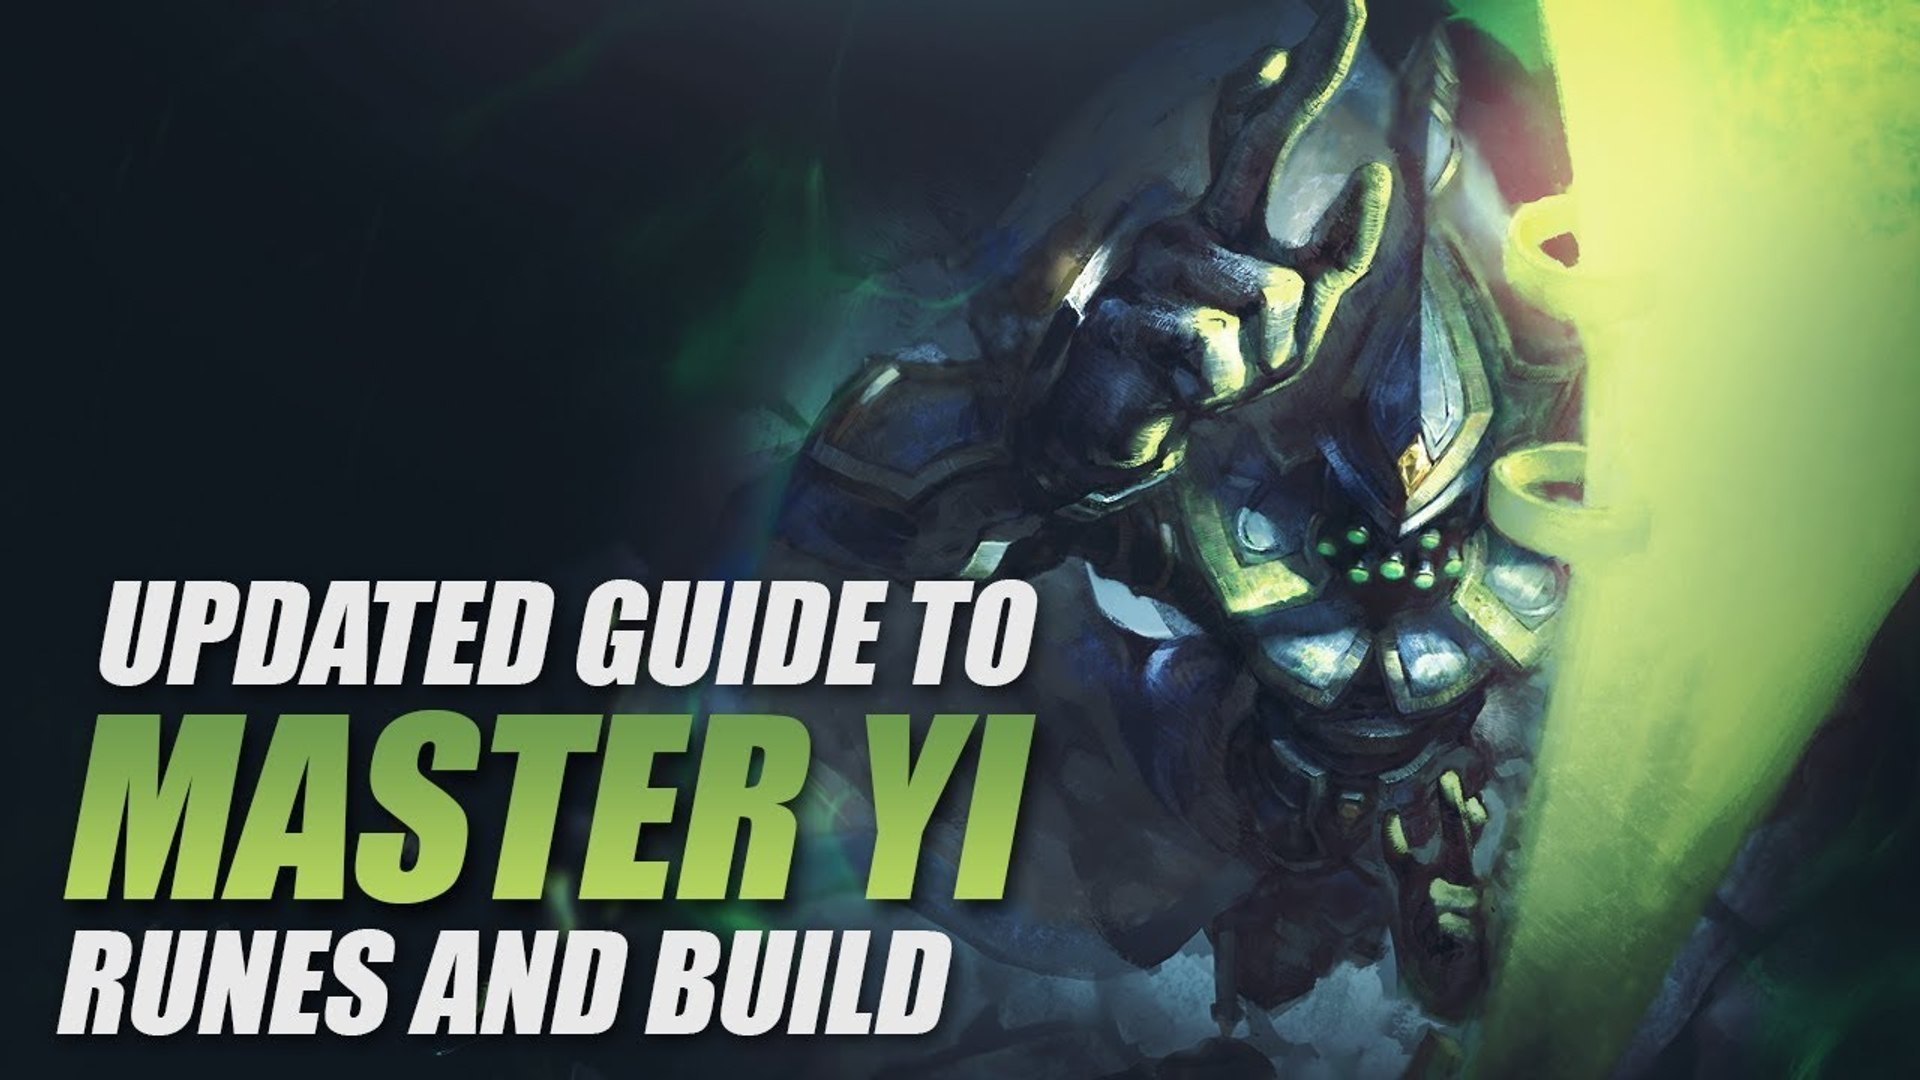 Updated Master Yi Runes And Build Pc Game 1447559 Hd